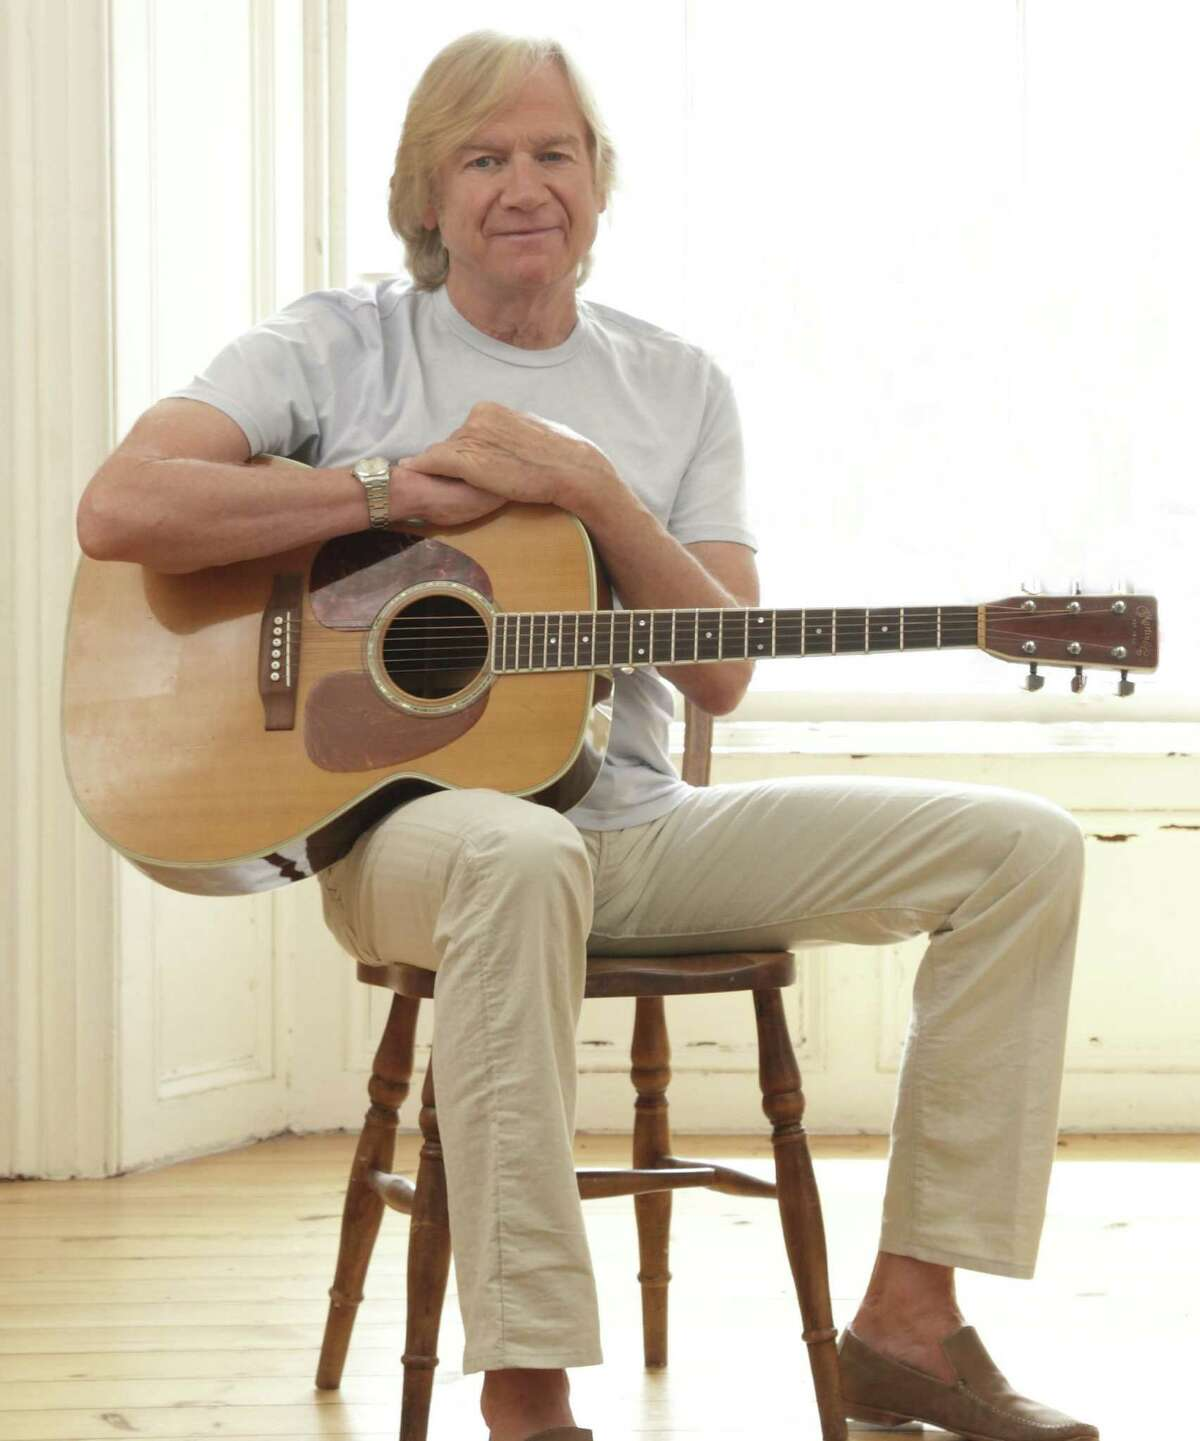 Justin Hayward, of The Moody Blues, is known for